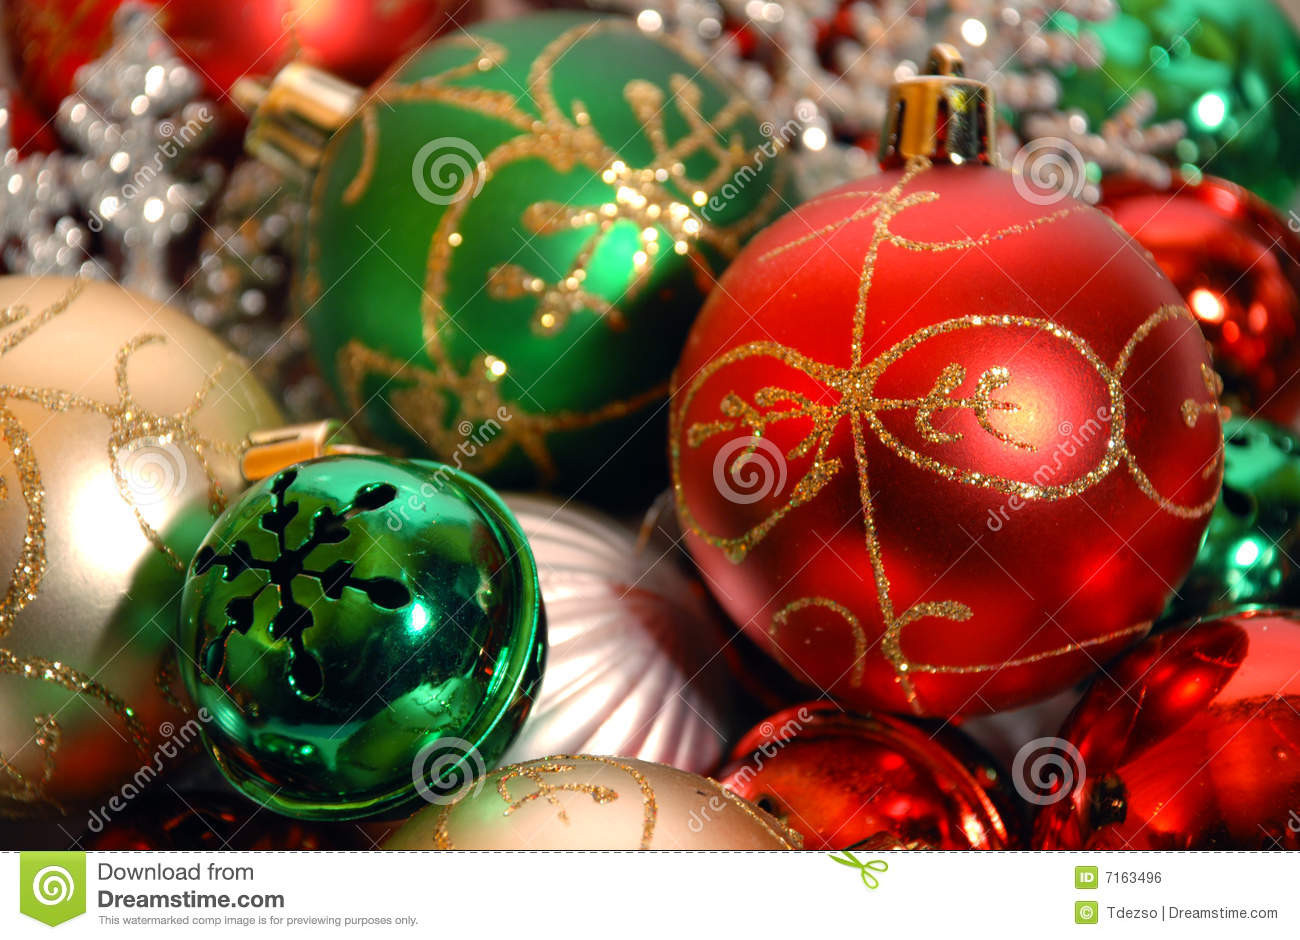 Colorful Christmas ornaments Best Of Colorful Christmas ornament Backgrounds – Happy Holidays Of Perfect 48 Pictures Colorful Christmas ornaments